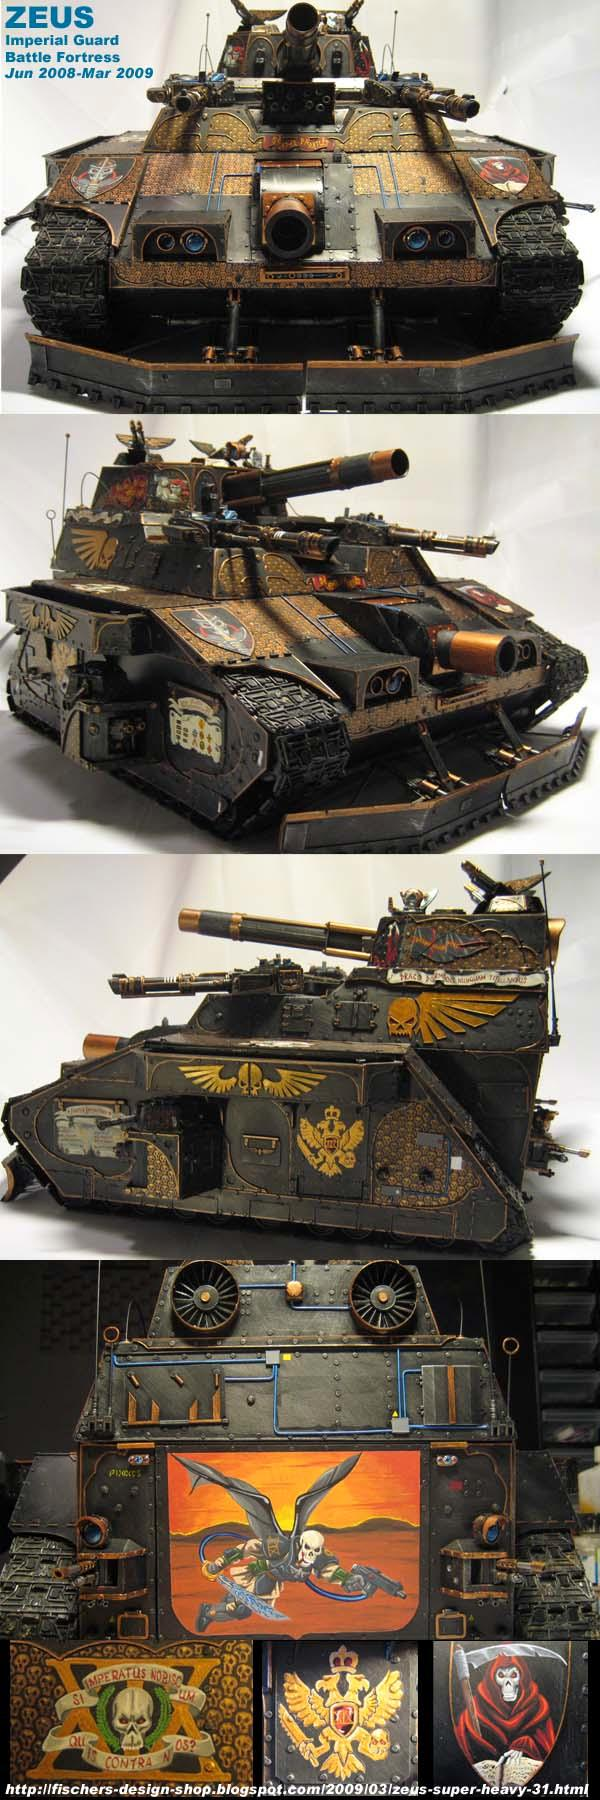 Apocalypse, Baneblade, Battle Fortress, Conversion, Freehand, Imperial, Large, Super-heavy, Tank